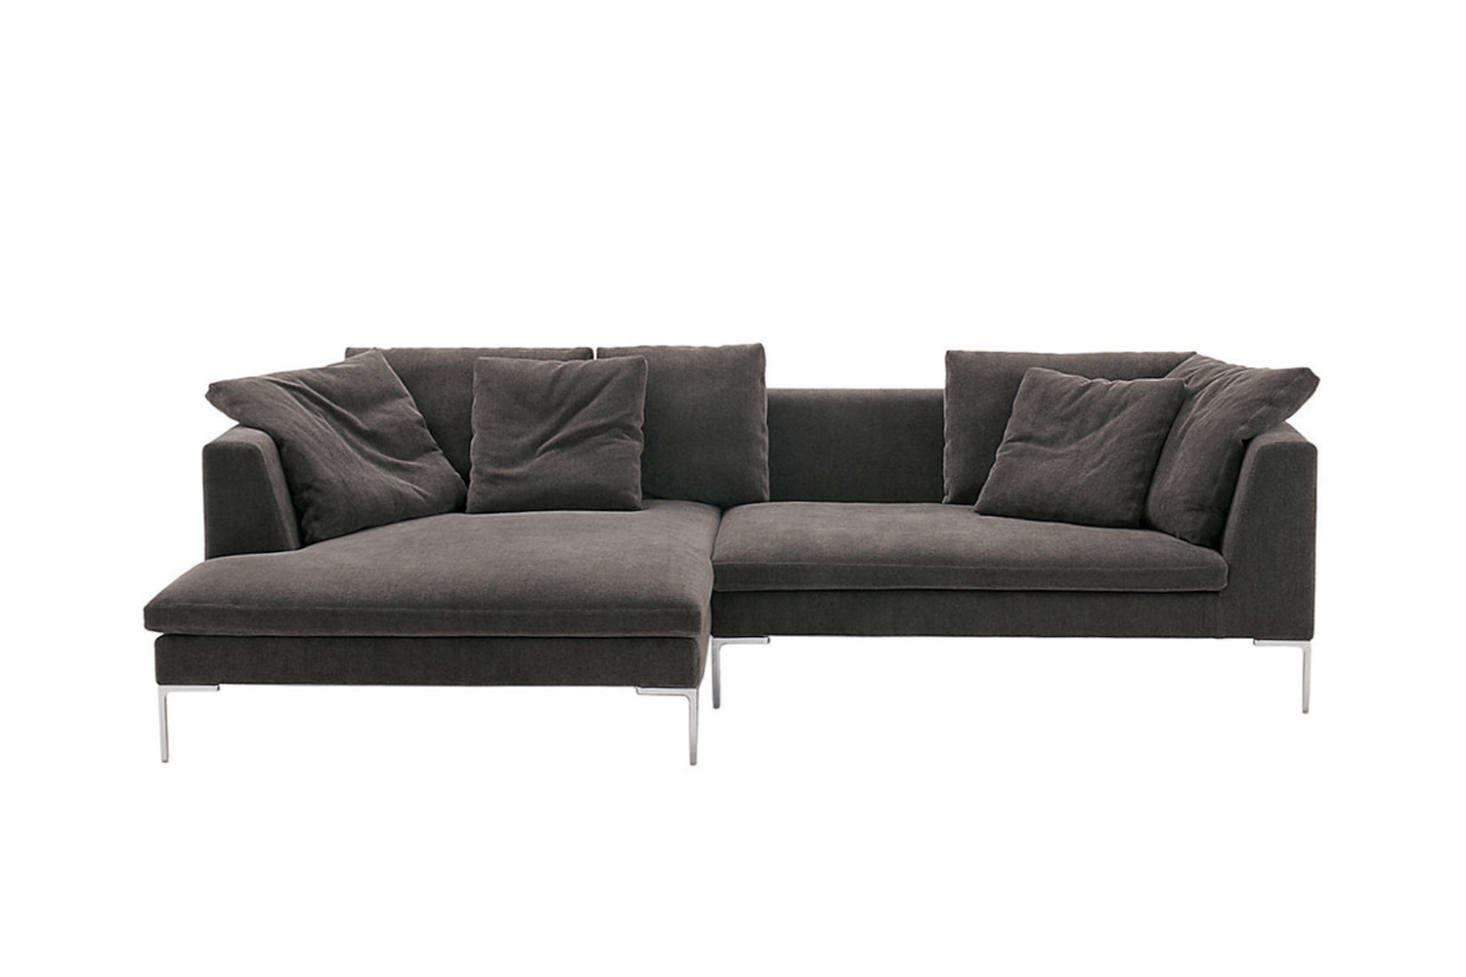 The Antonio Citterio Designed Charles Large Sofa By B Italia Is A Remodelista Favorite